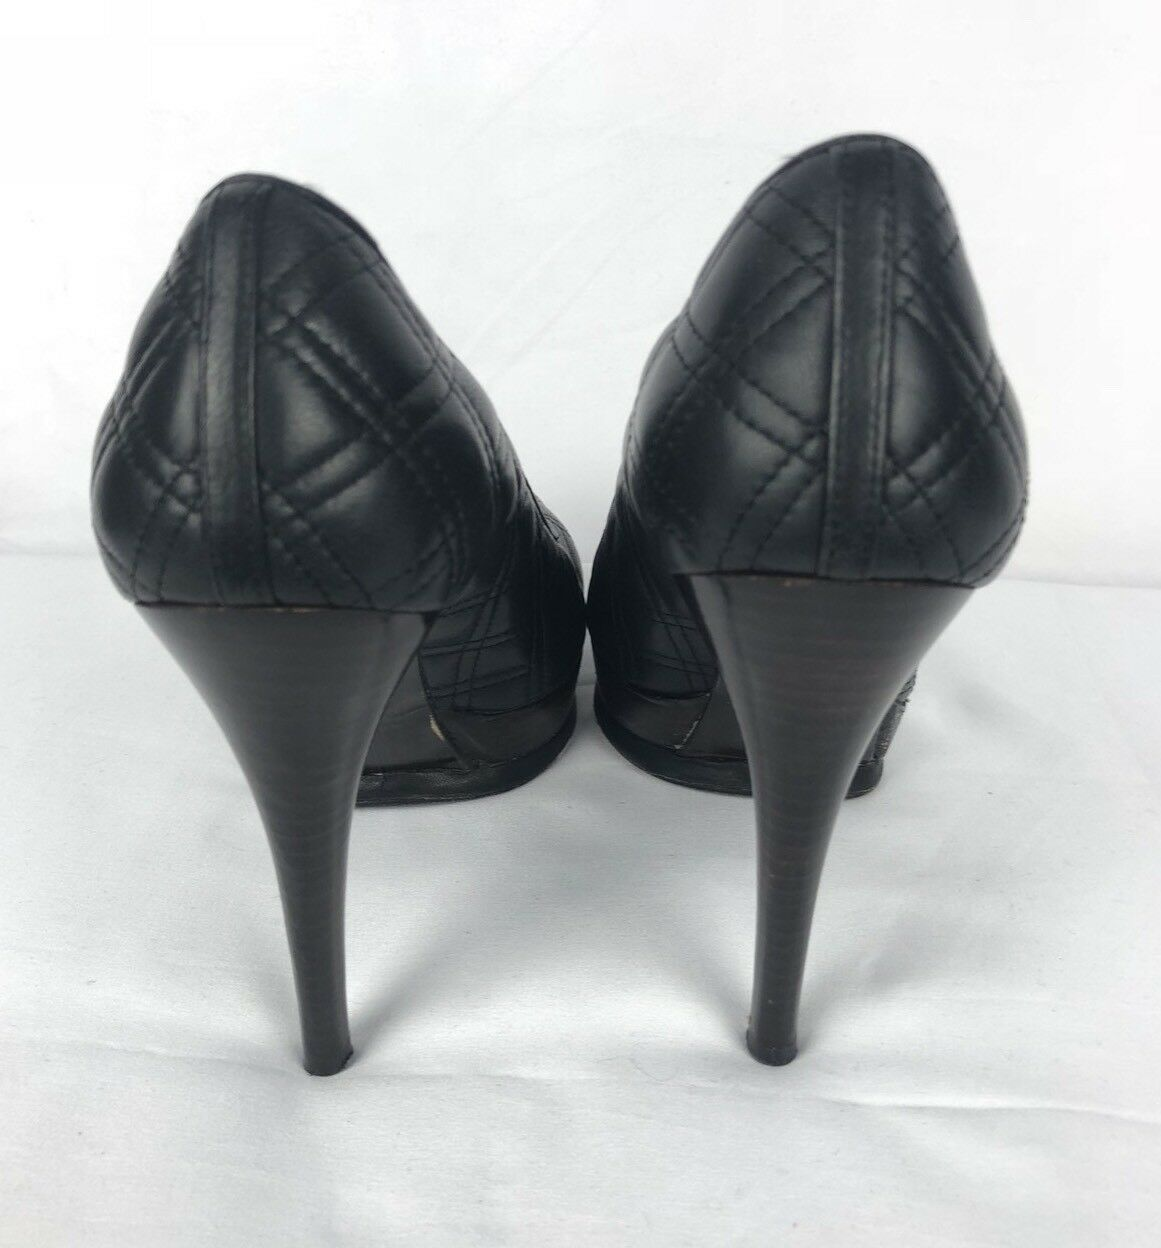 Stuart Weitzman Women's Quilted Leather Heels Sz 7 shoes Dress Dress Dress Stiletto Pumps 8c38ad